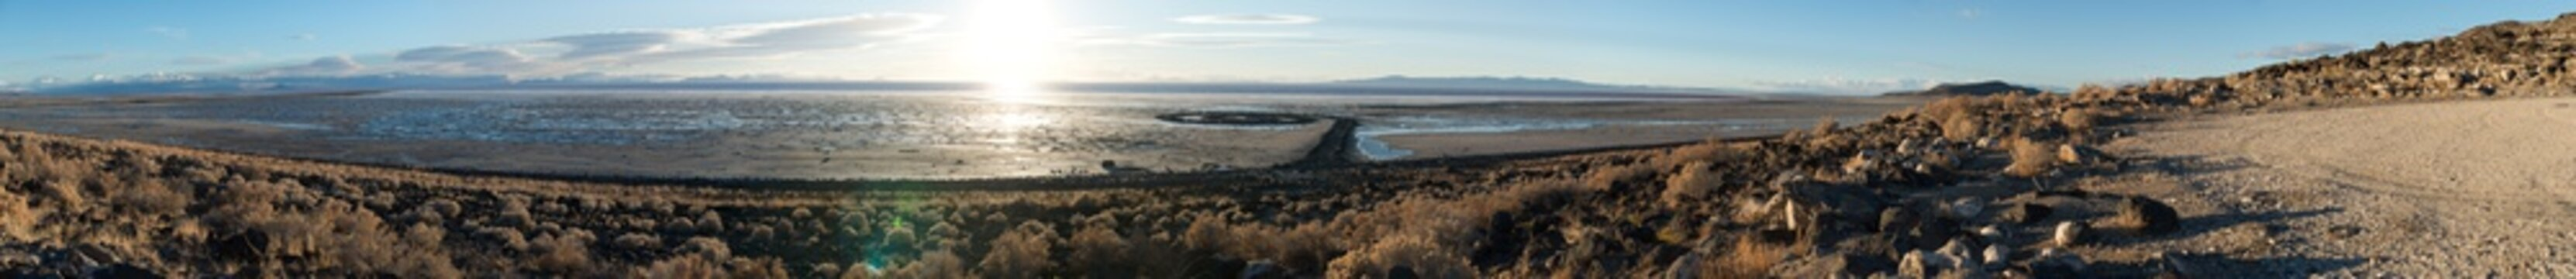 Spiral Jetty Panorama